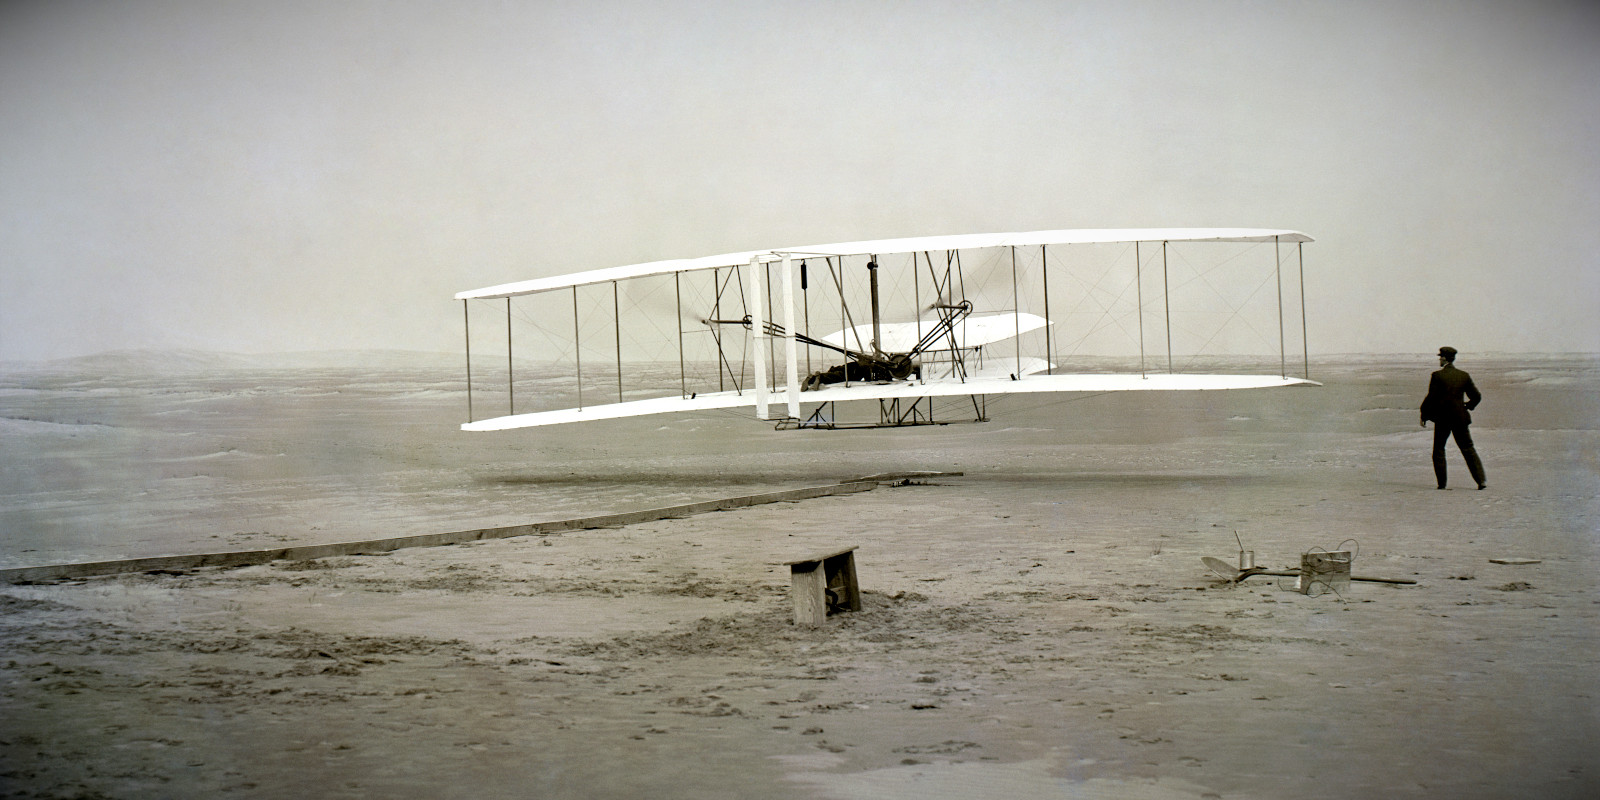 The Wright Brother's Flyer during its first flight in Kitty Hawk.